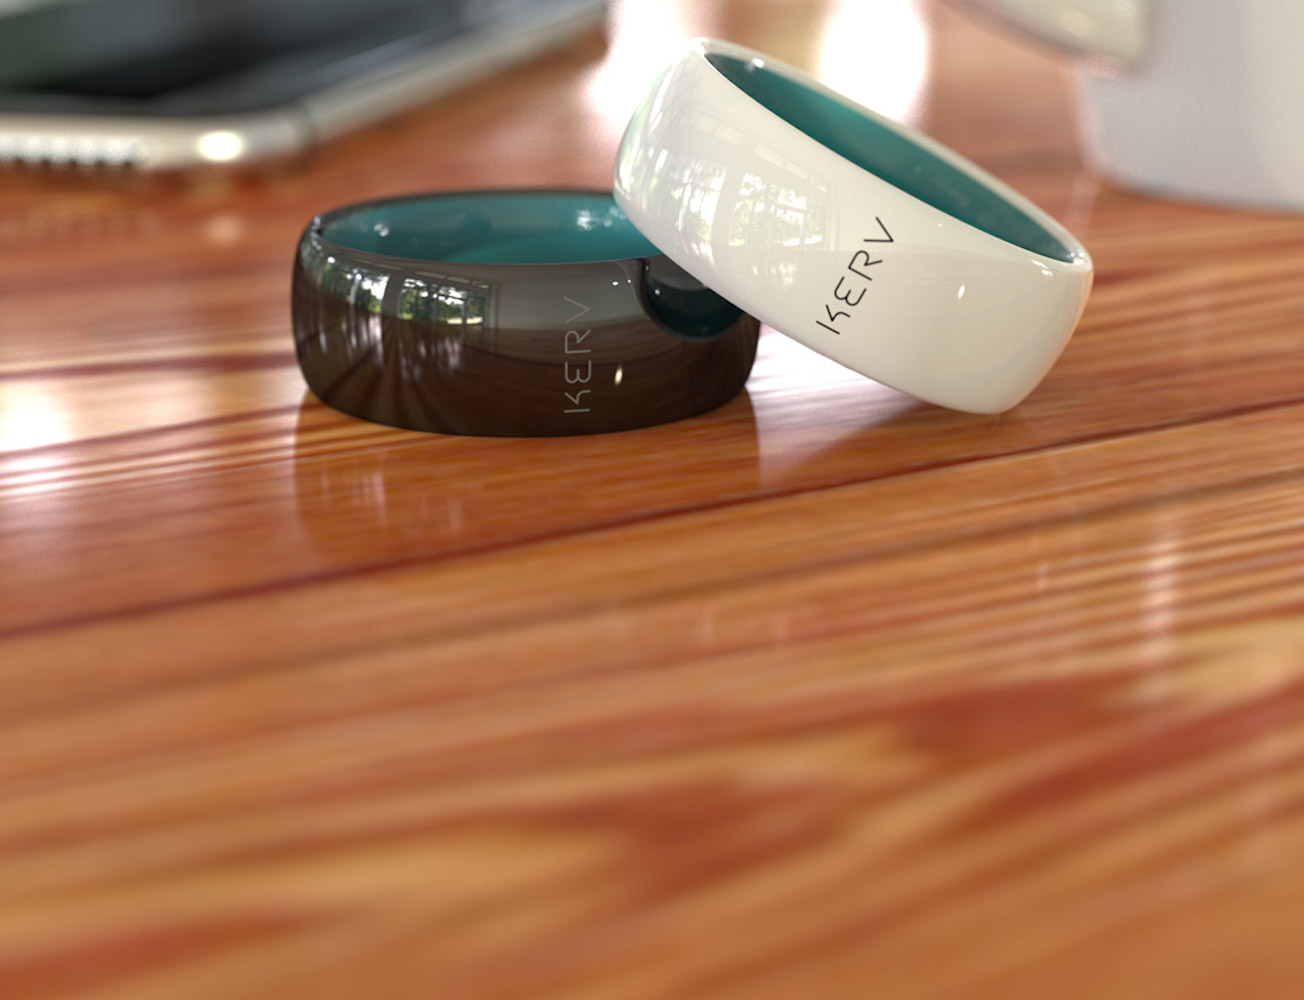 Kerv – The World's First Contactless Payment Ring